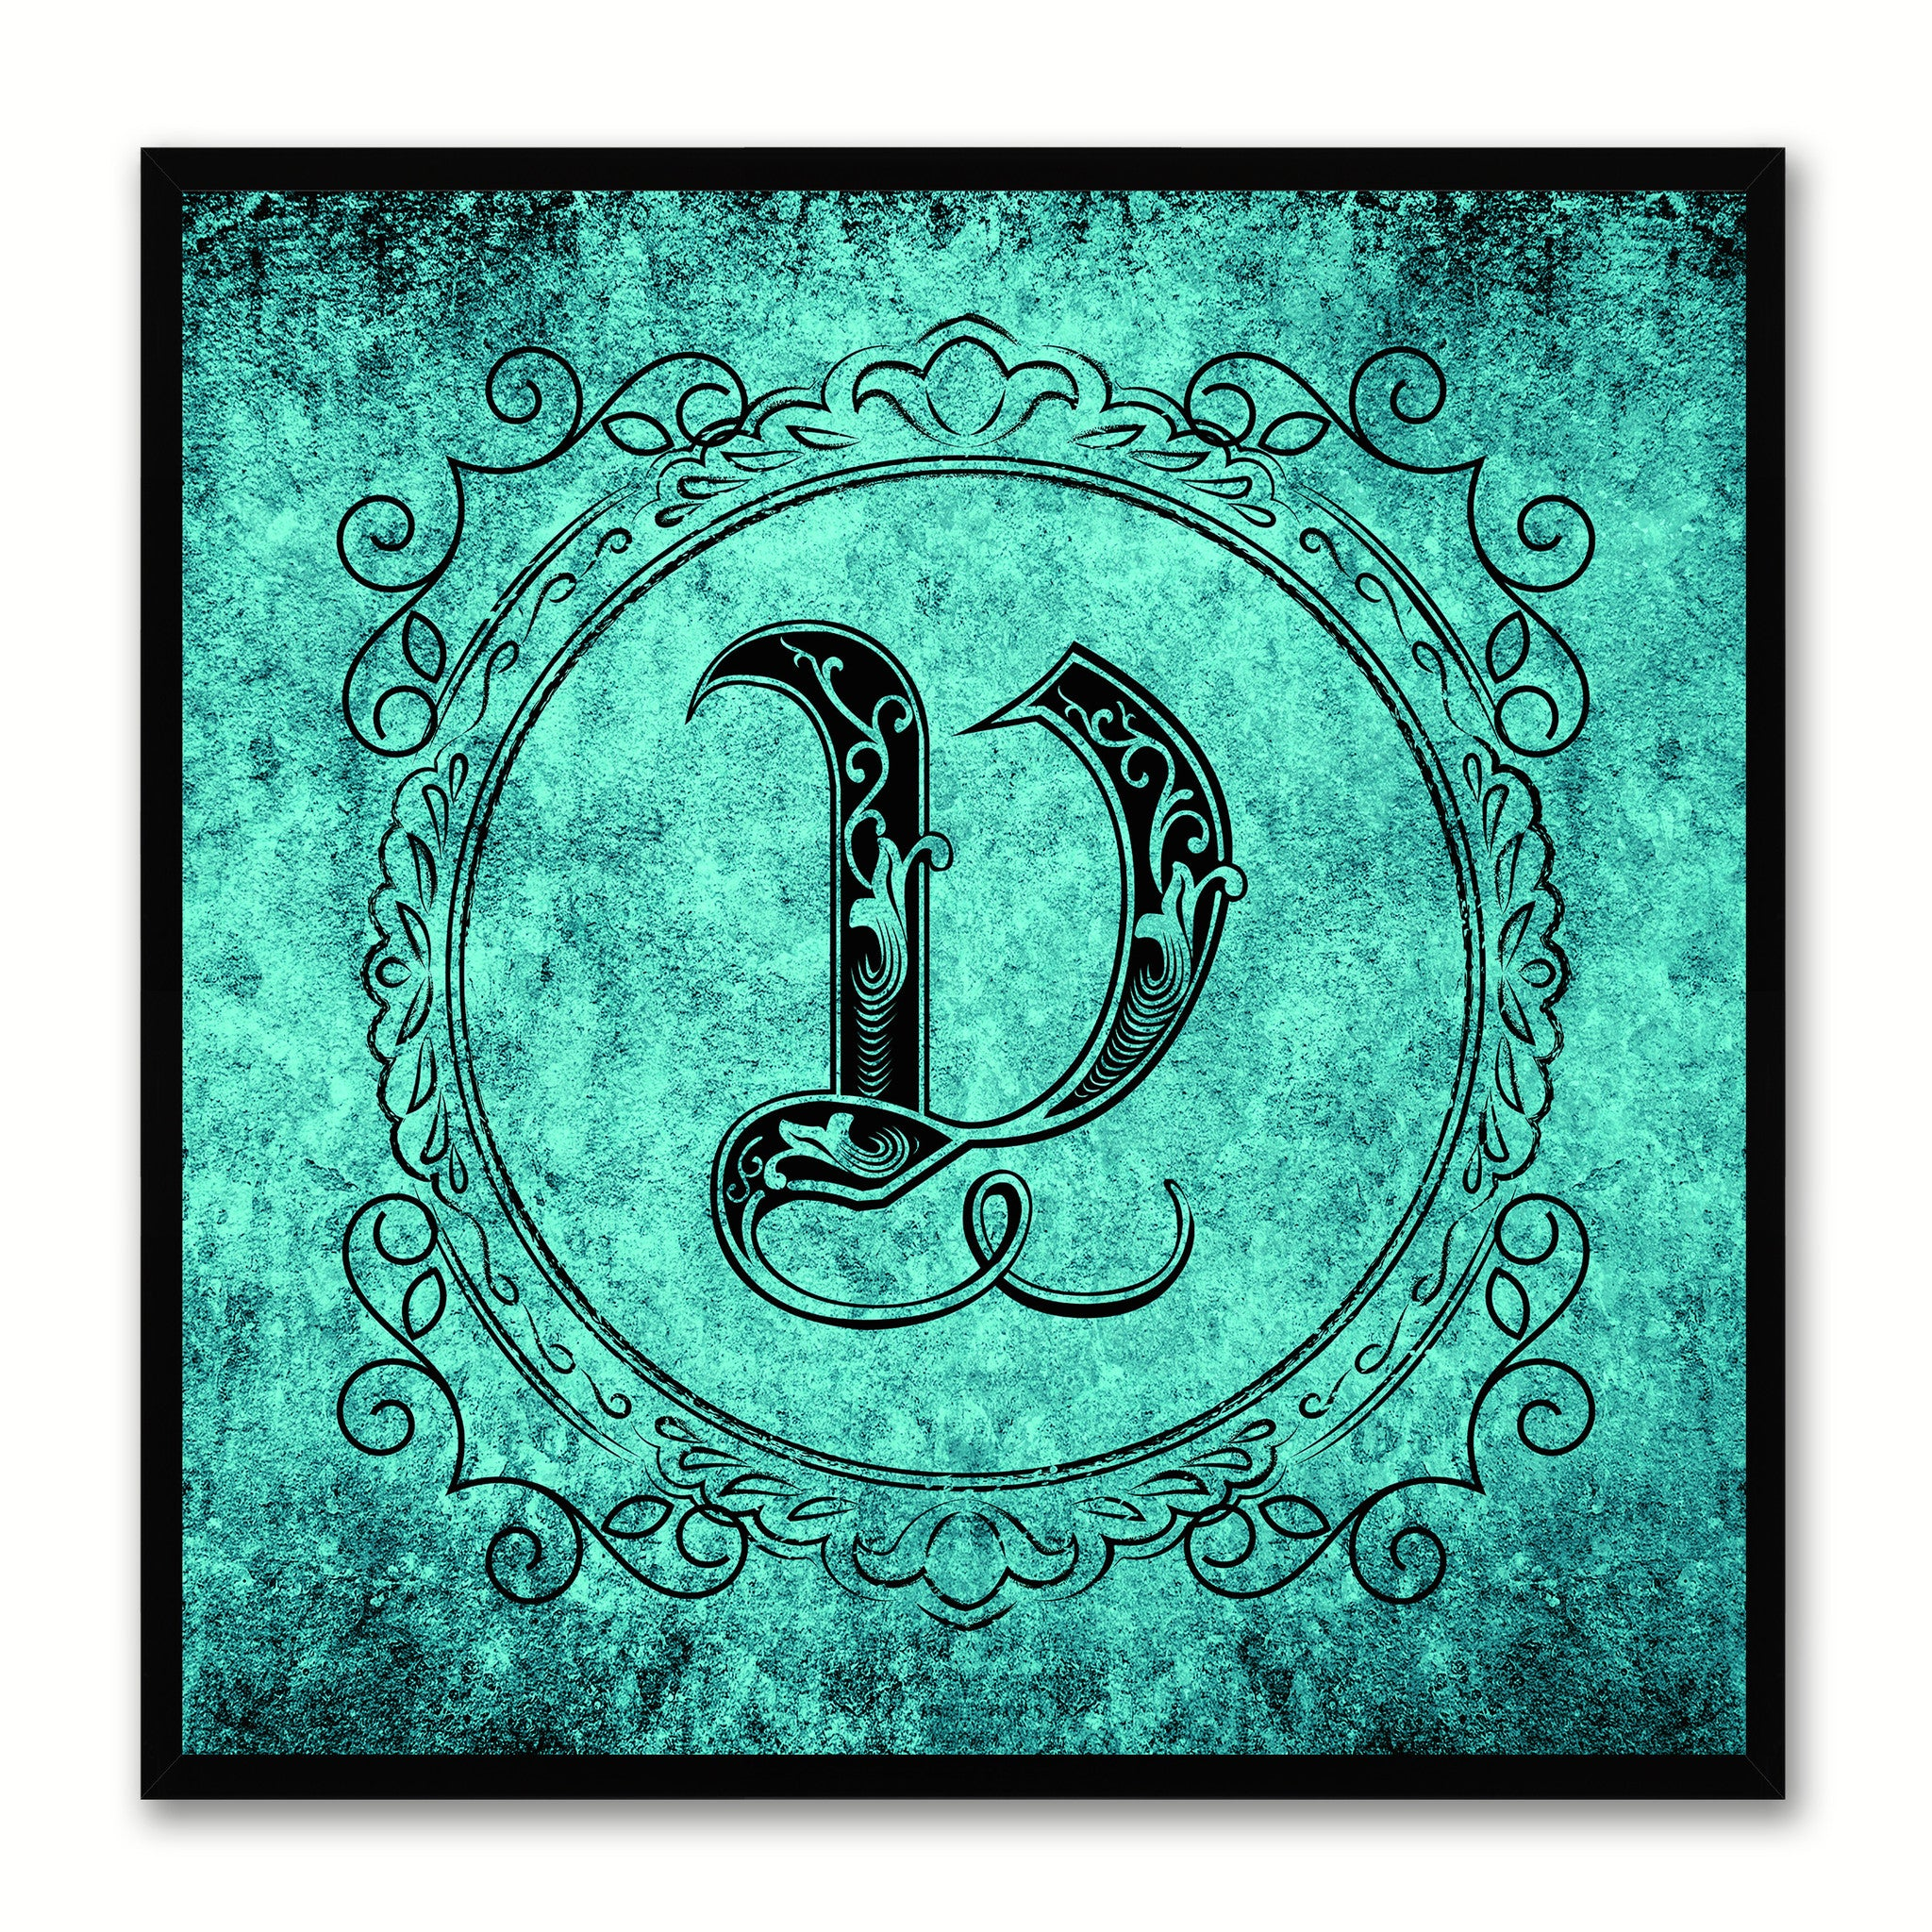 Alphabet V Aqua Canvas Print Black Frame Kids Bedroom Wall Décor Home Art